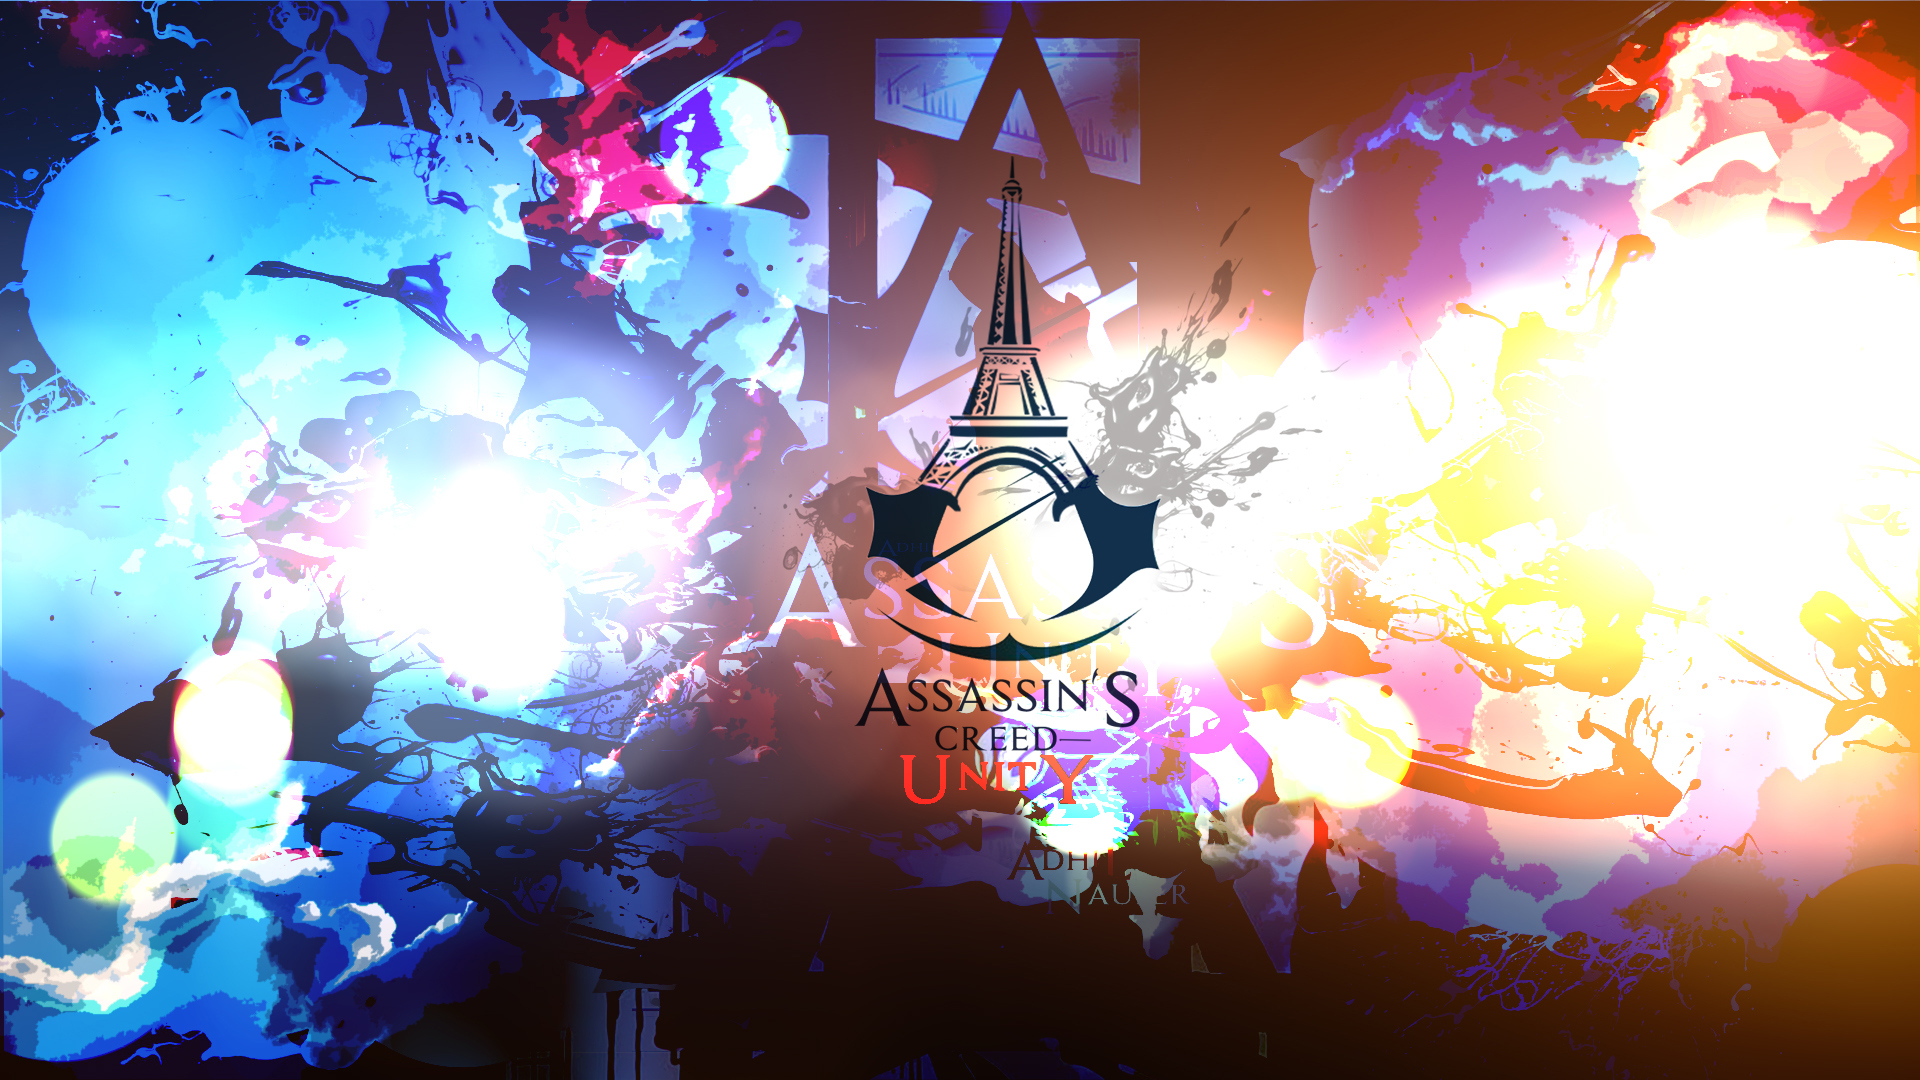 logo of assassin s creed unity game hd 1920x1080 1080p wallpaper and 1920x1080